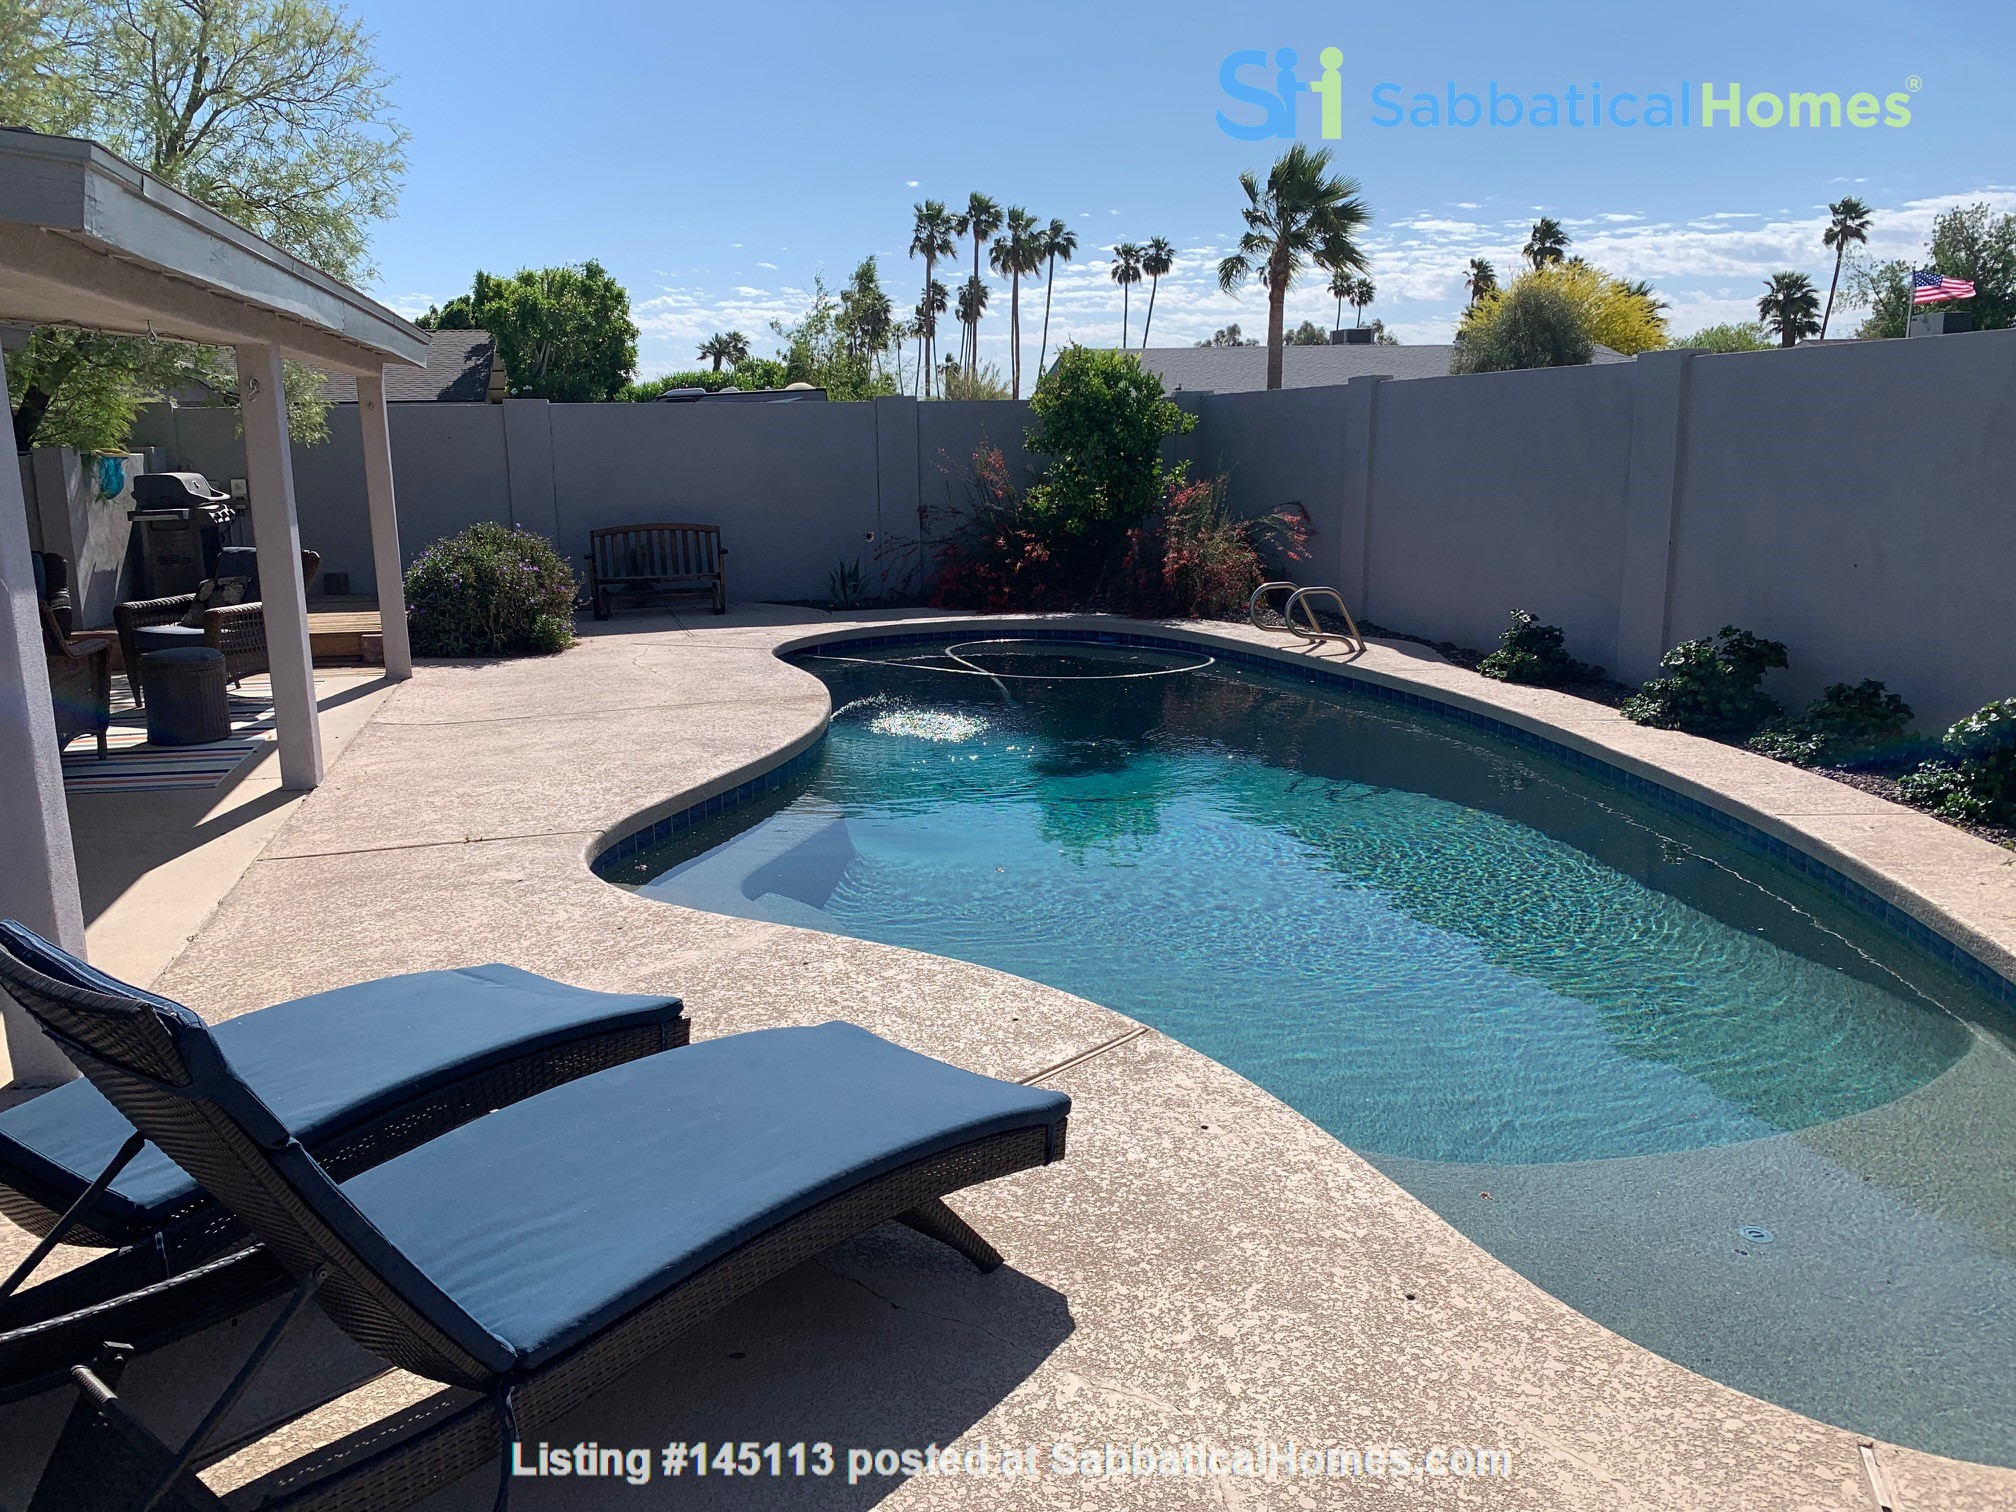 Modern family home 3 miles from ASU, 6 miles from Intel campus Home Rental in Tempe, Arizona, United States 1